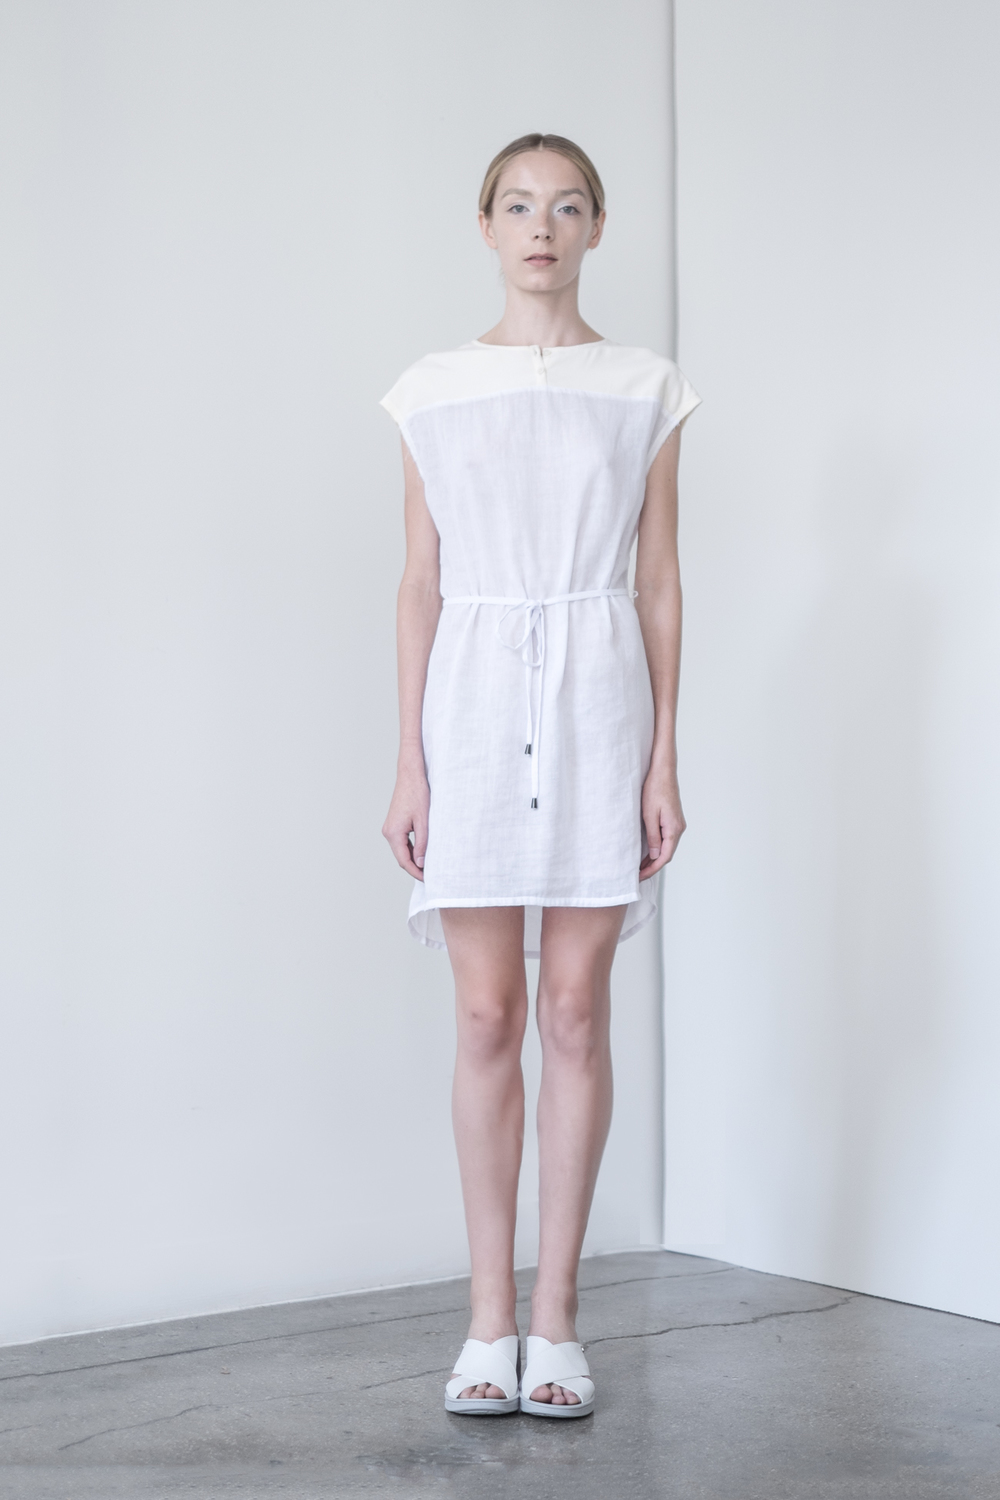 LOOK 10   TOP:   2261  / Blanc Combo  -     Cap sleeve dress with tie, in crinkle woven 2-layer cotton gauze.